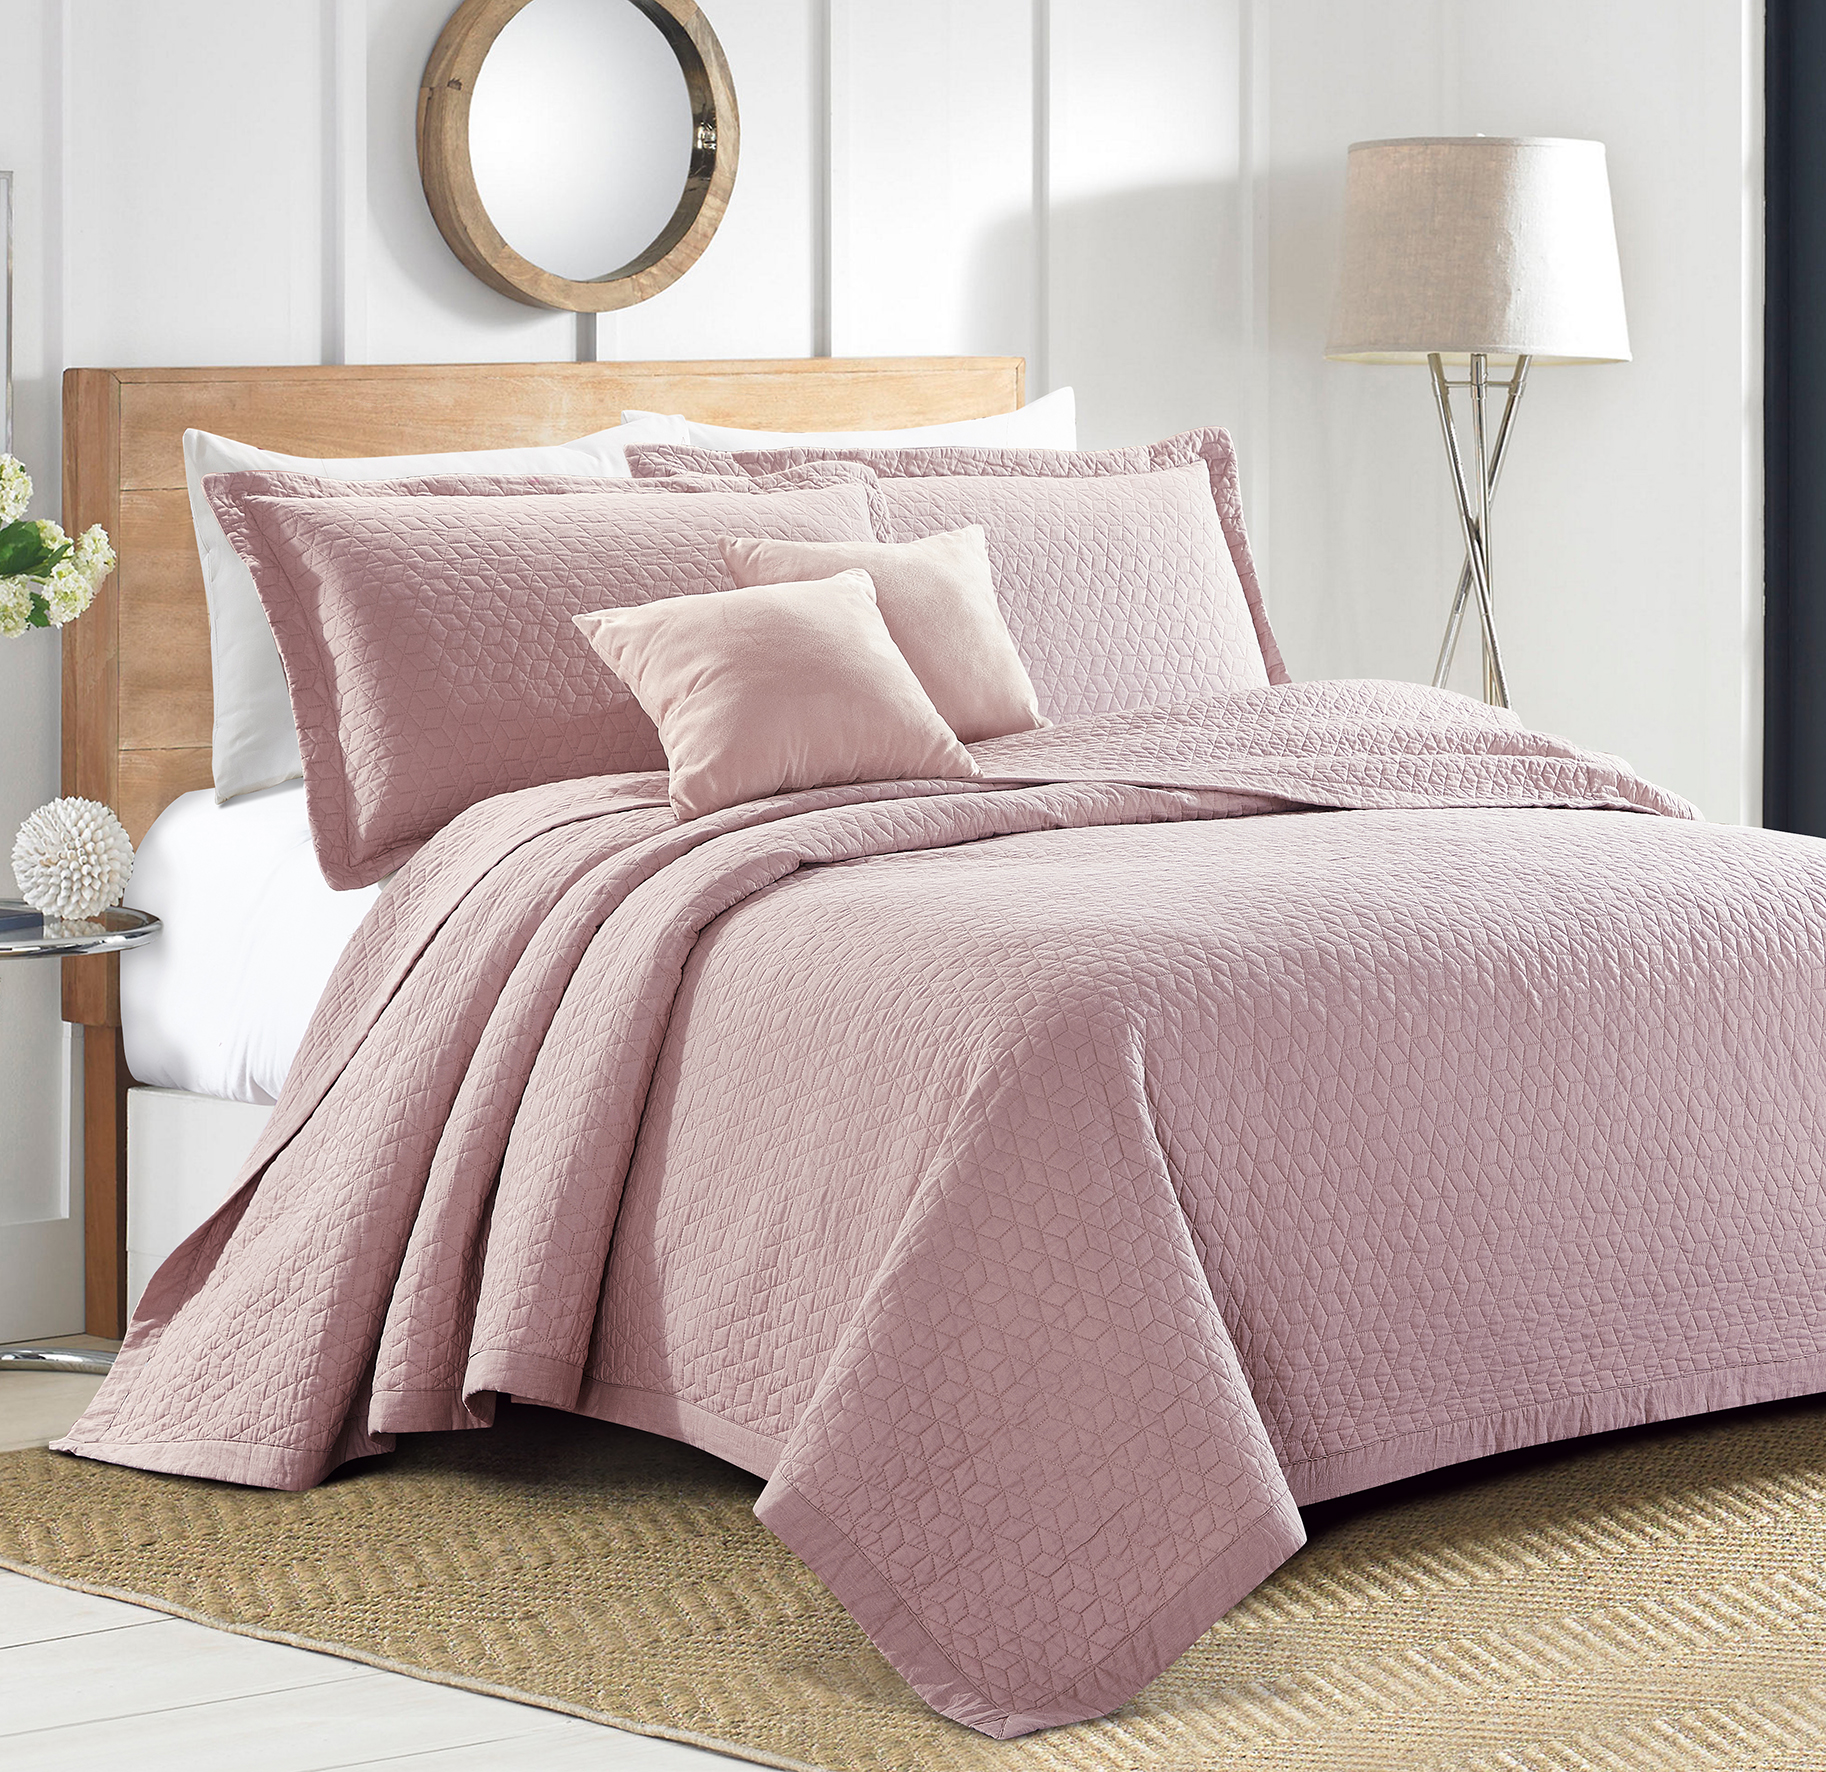 Sherry Kline Out of the Box Embroidered 3-piece Queen Pink Cotton Quilt Set